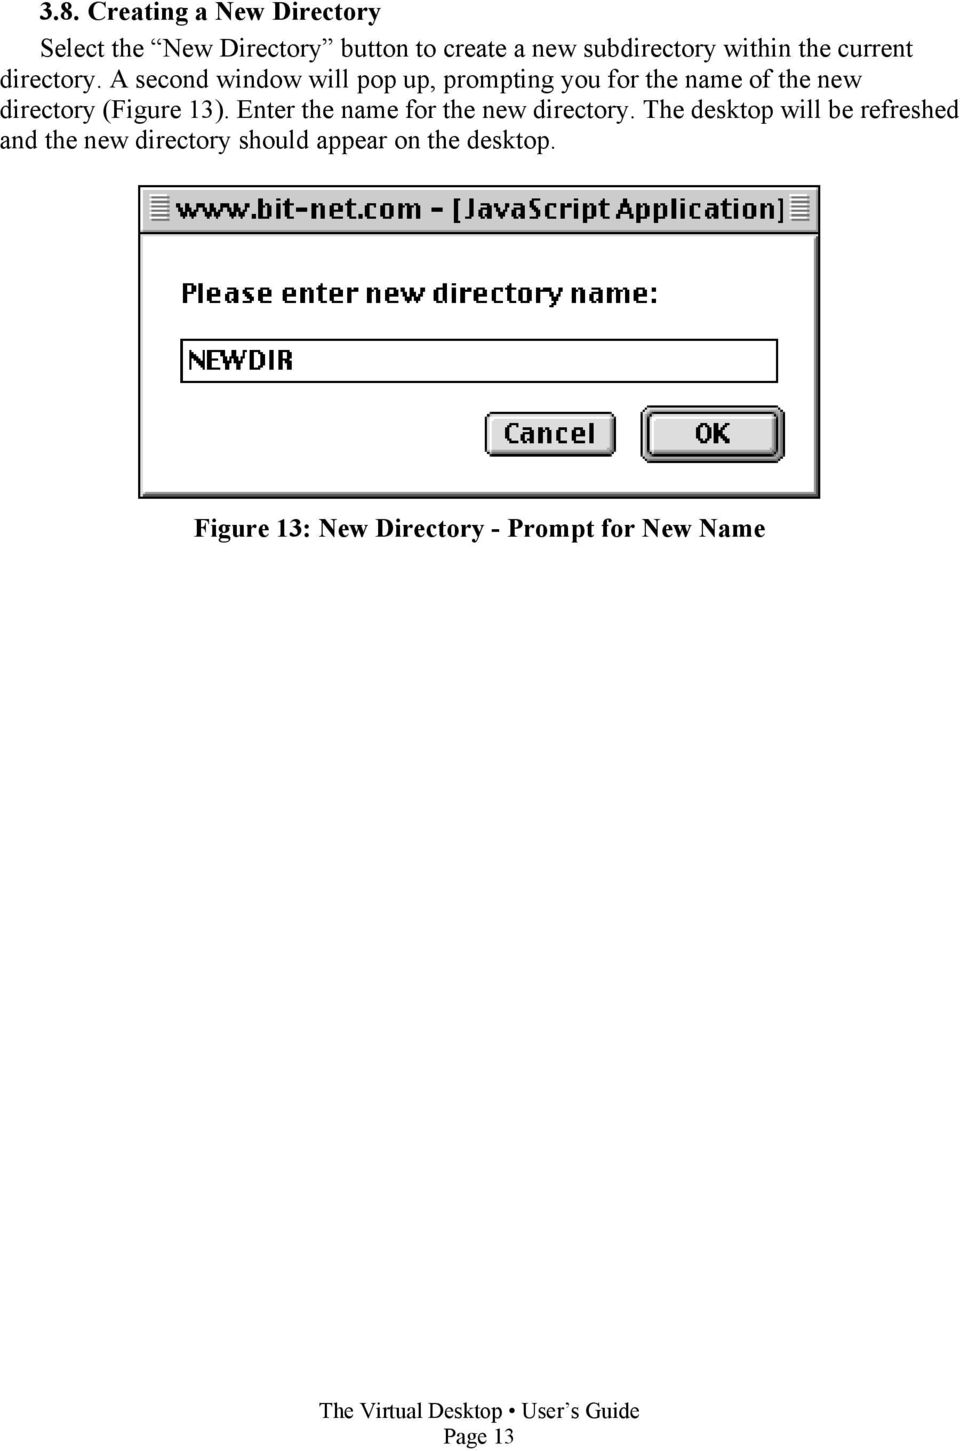 A second window will pop up, prompting you for the name of the new directory (Figure 13).